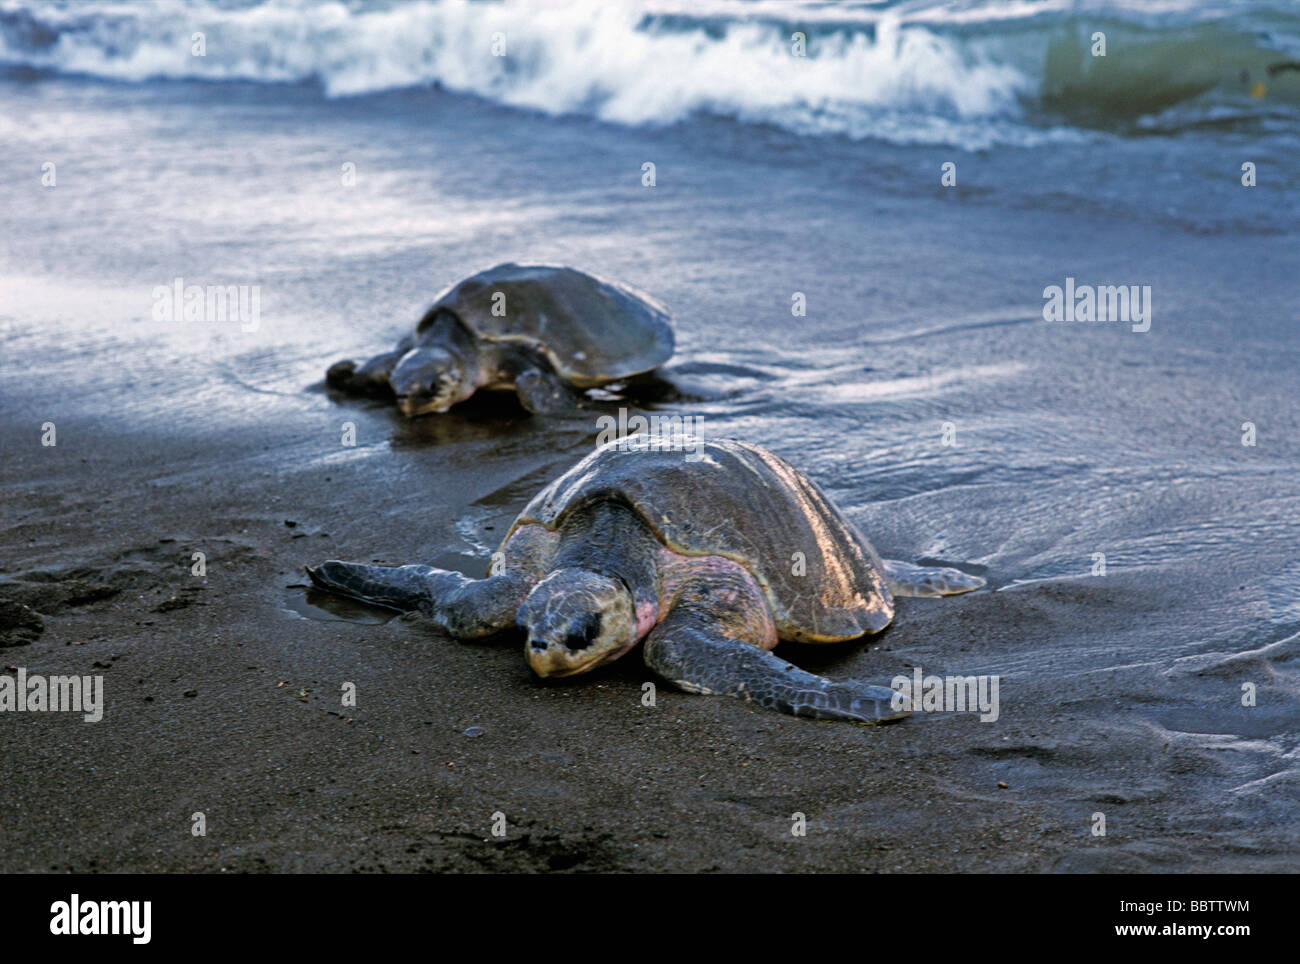 Arribada Arrival of Olive Ridley Turtles Lepidochelys olivacea to lay eggs Ostional Costa Rica - Stock Image